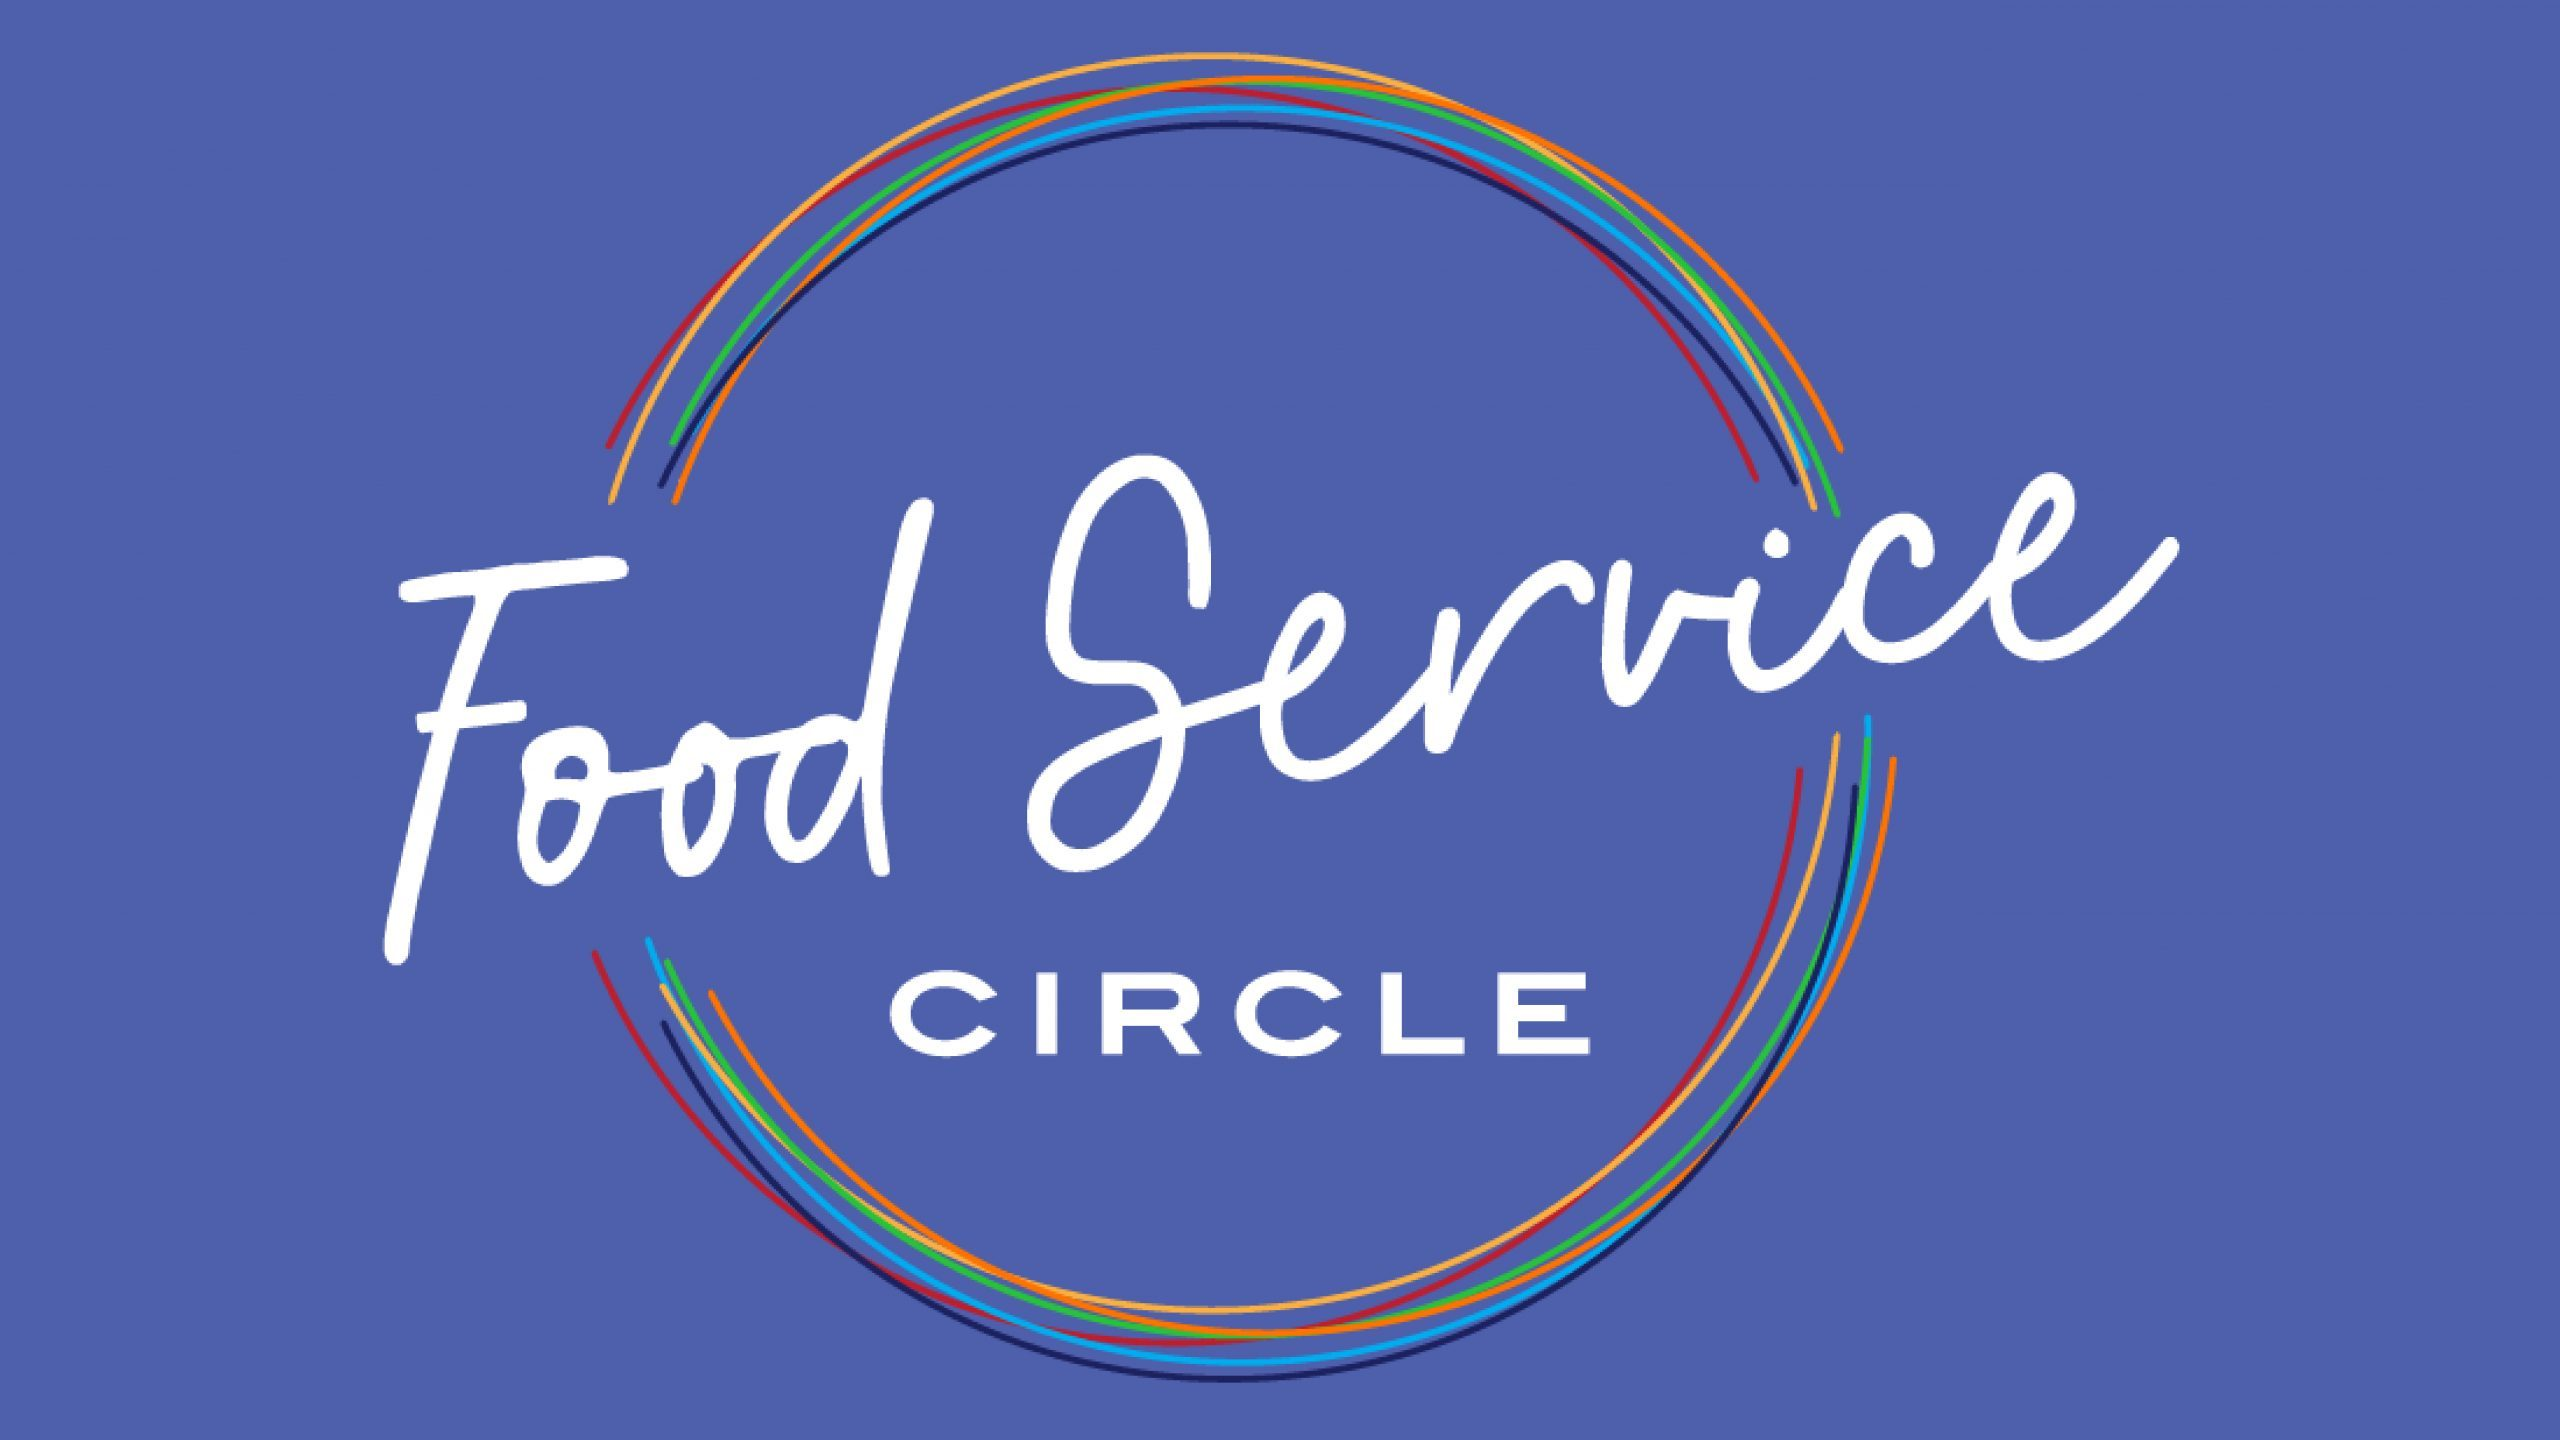 Food-Service-Circle-Youtube-Banner-2-01-scaled